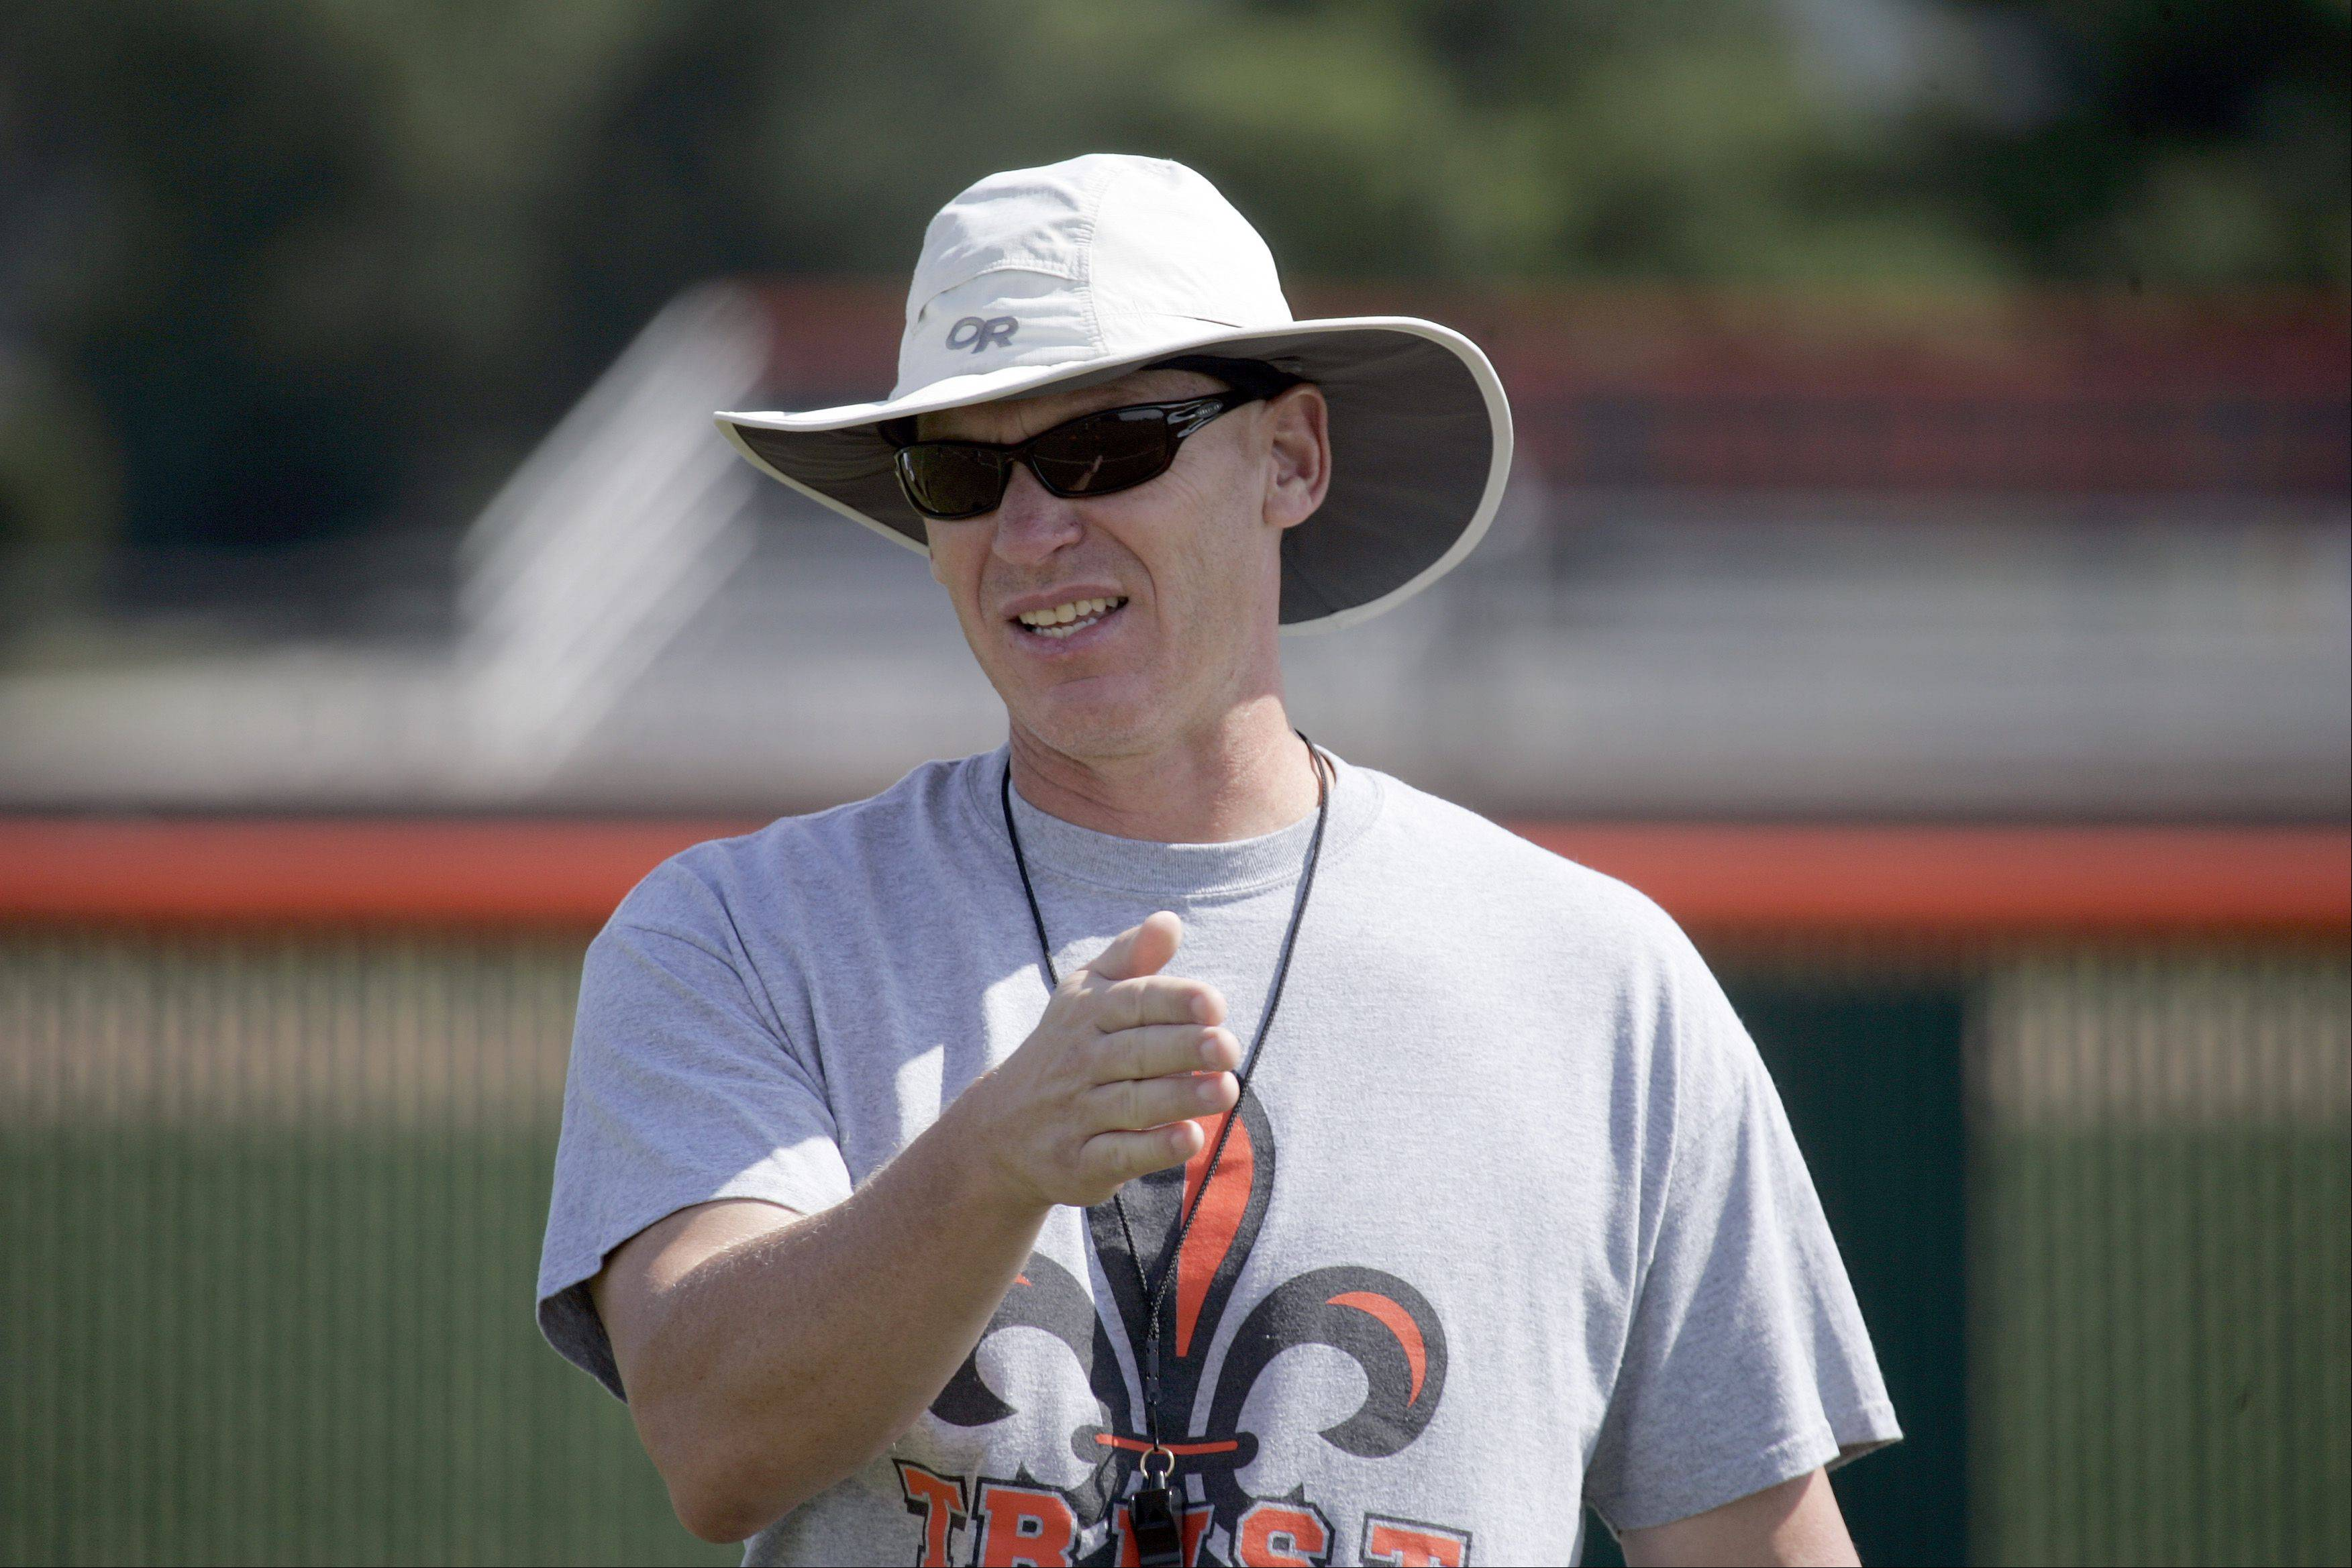 Brian Hill/bhill@dailyherald.com Coach Mike Fields during the second day of football practice at St. Charles East High School Thursday in St. Charles.